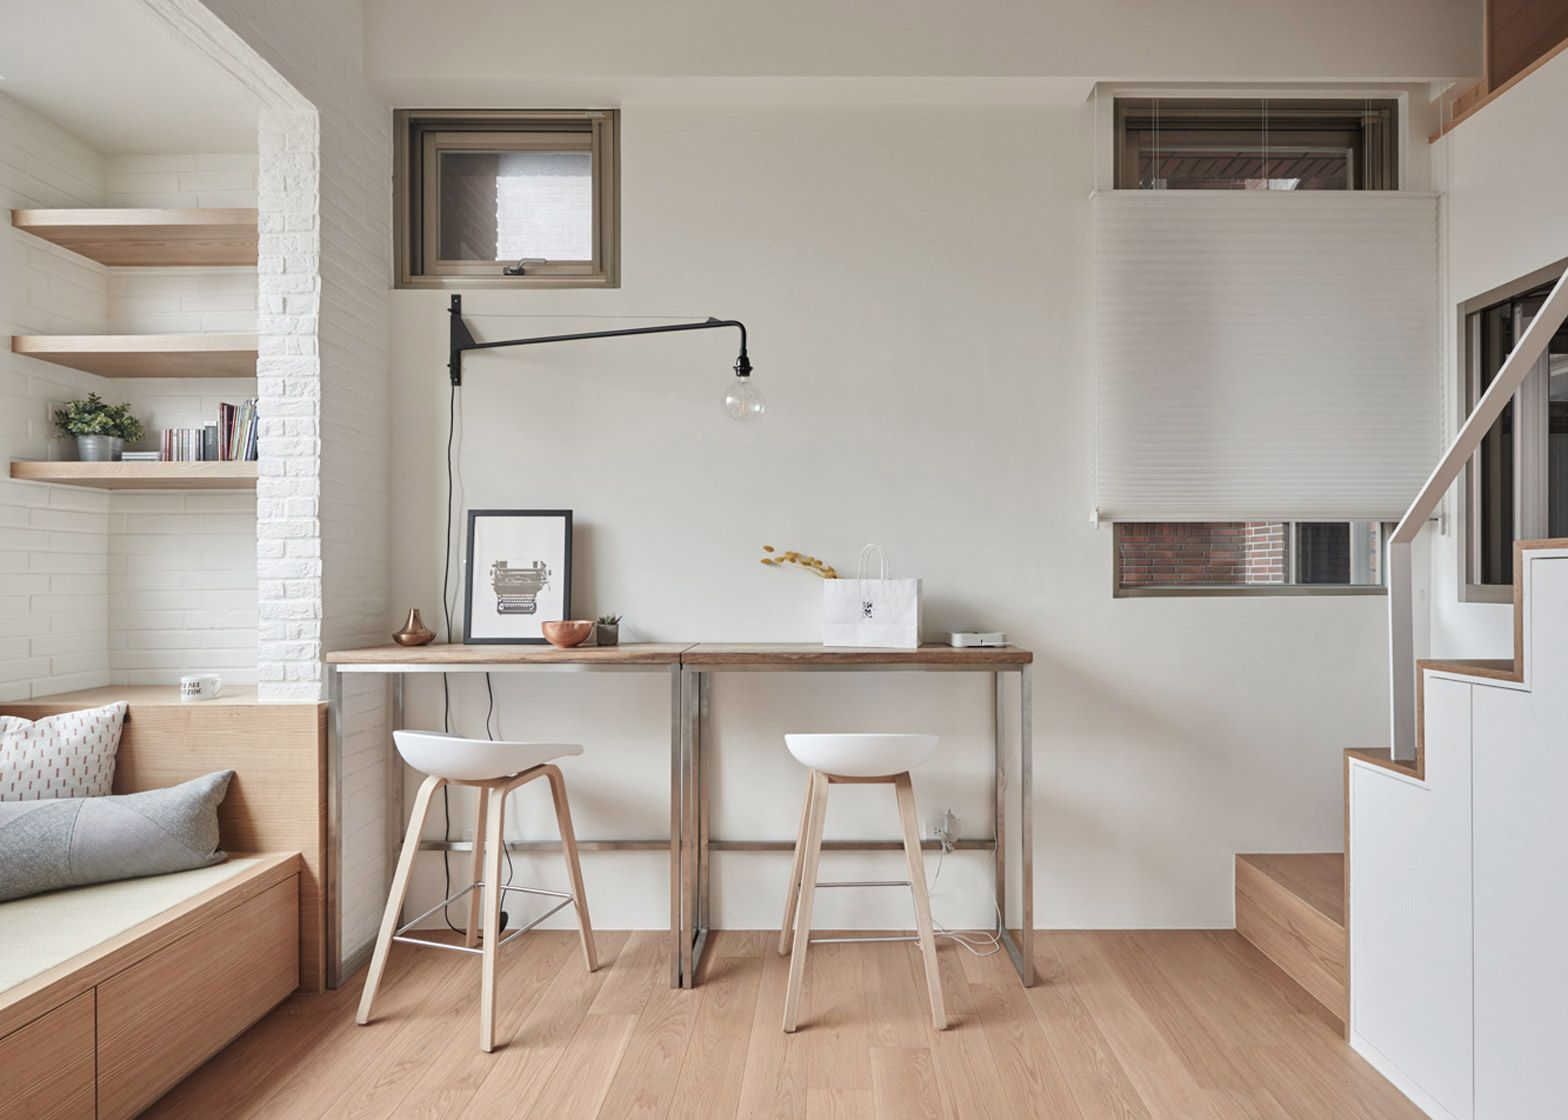 The 22m2 apartment in Taiwan features two wooden tables arranged ...